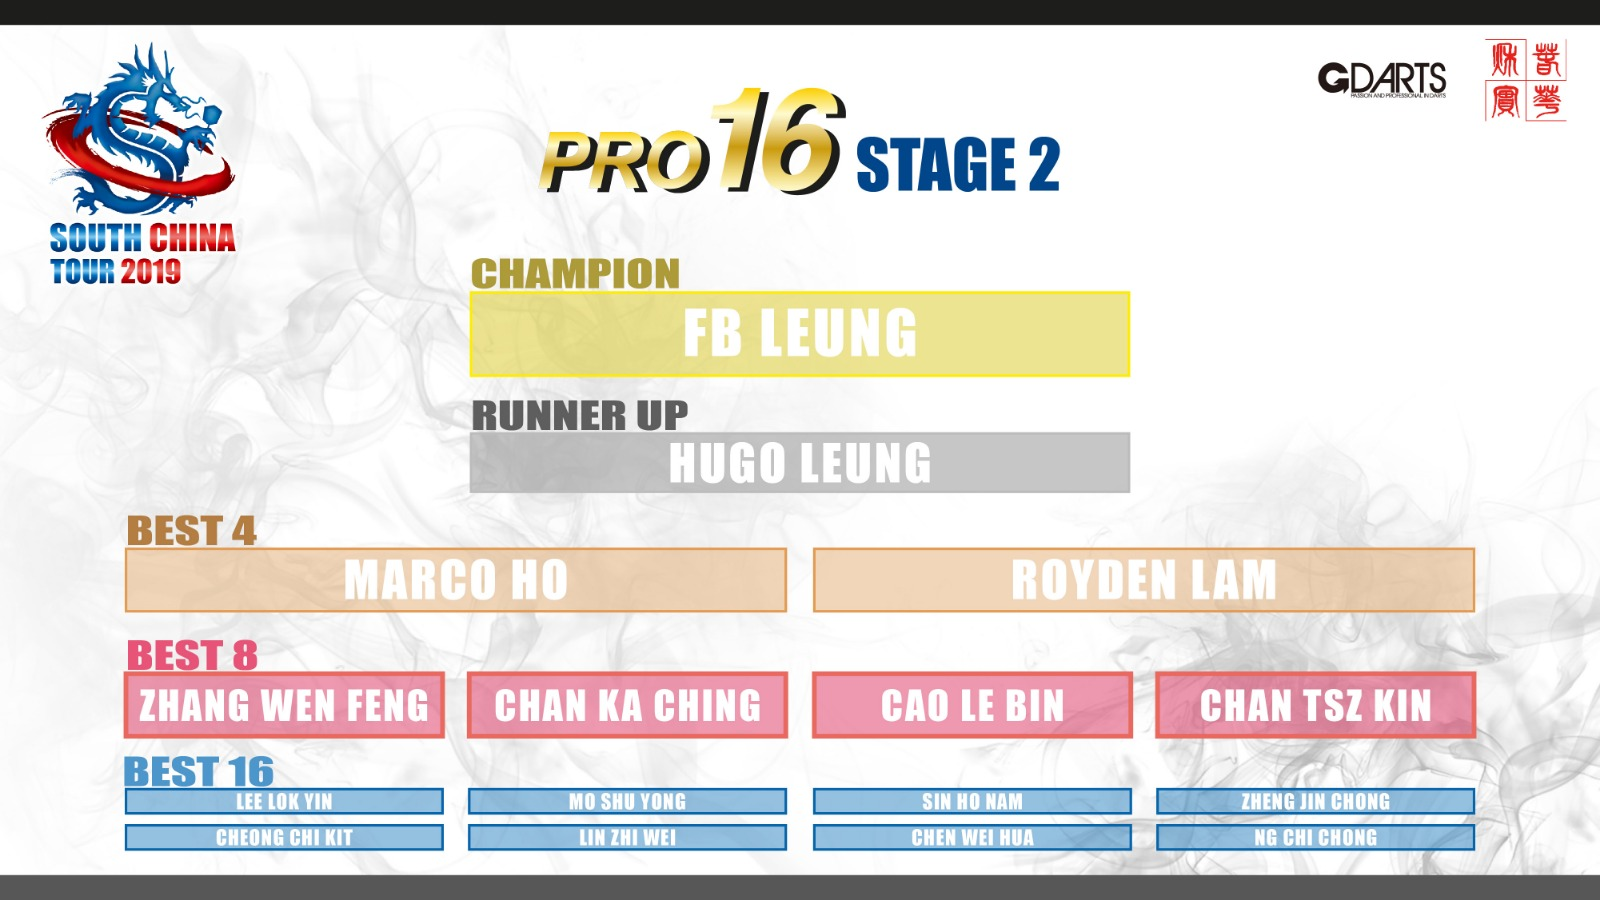 SOUTH CHINA TOUR 2019 STAGE 2